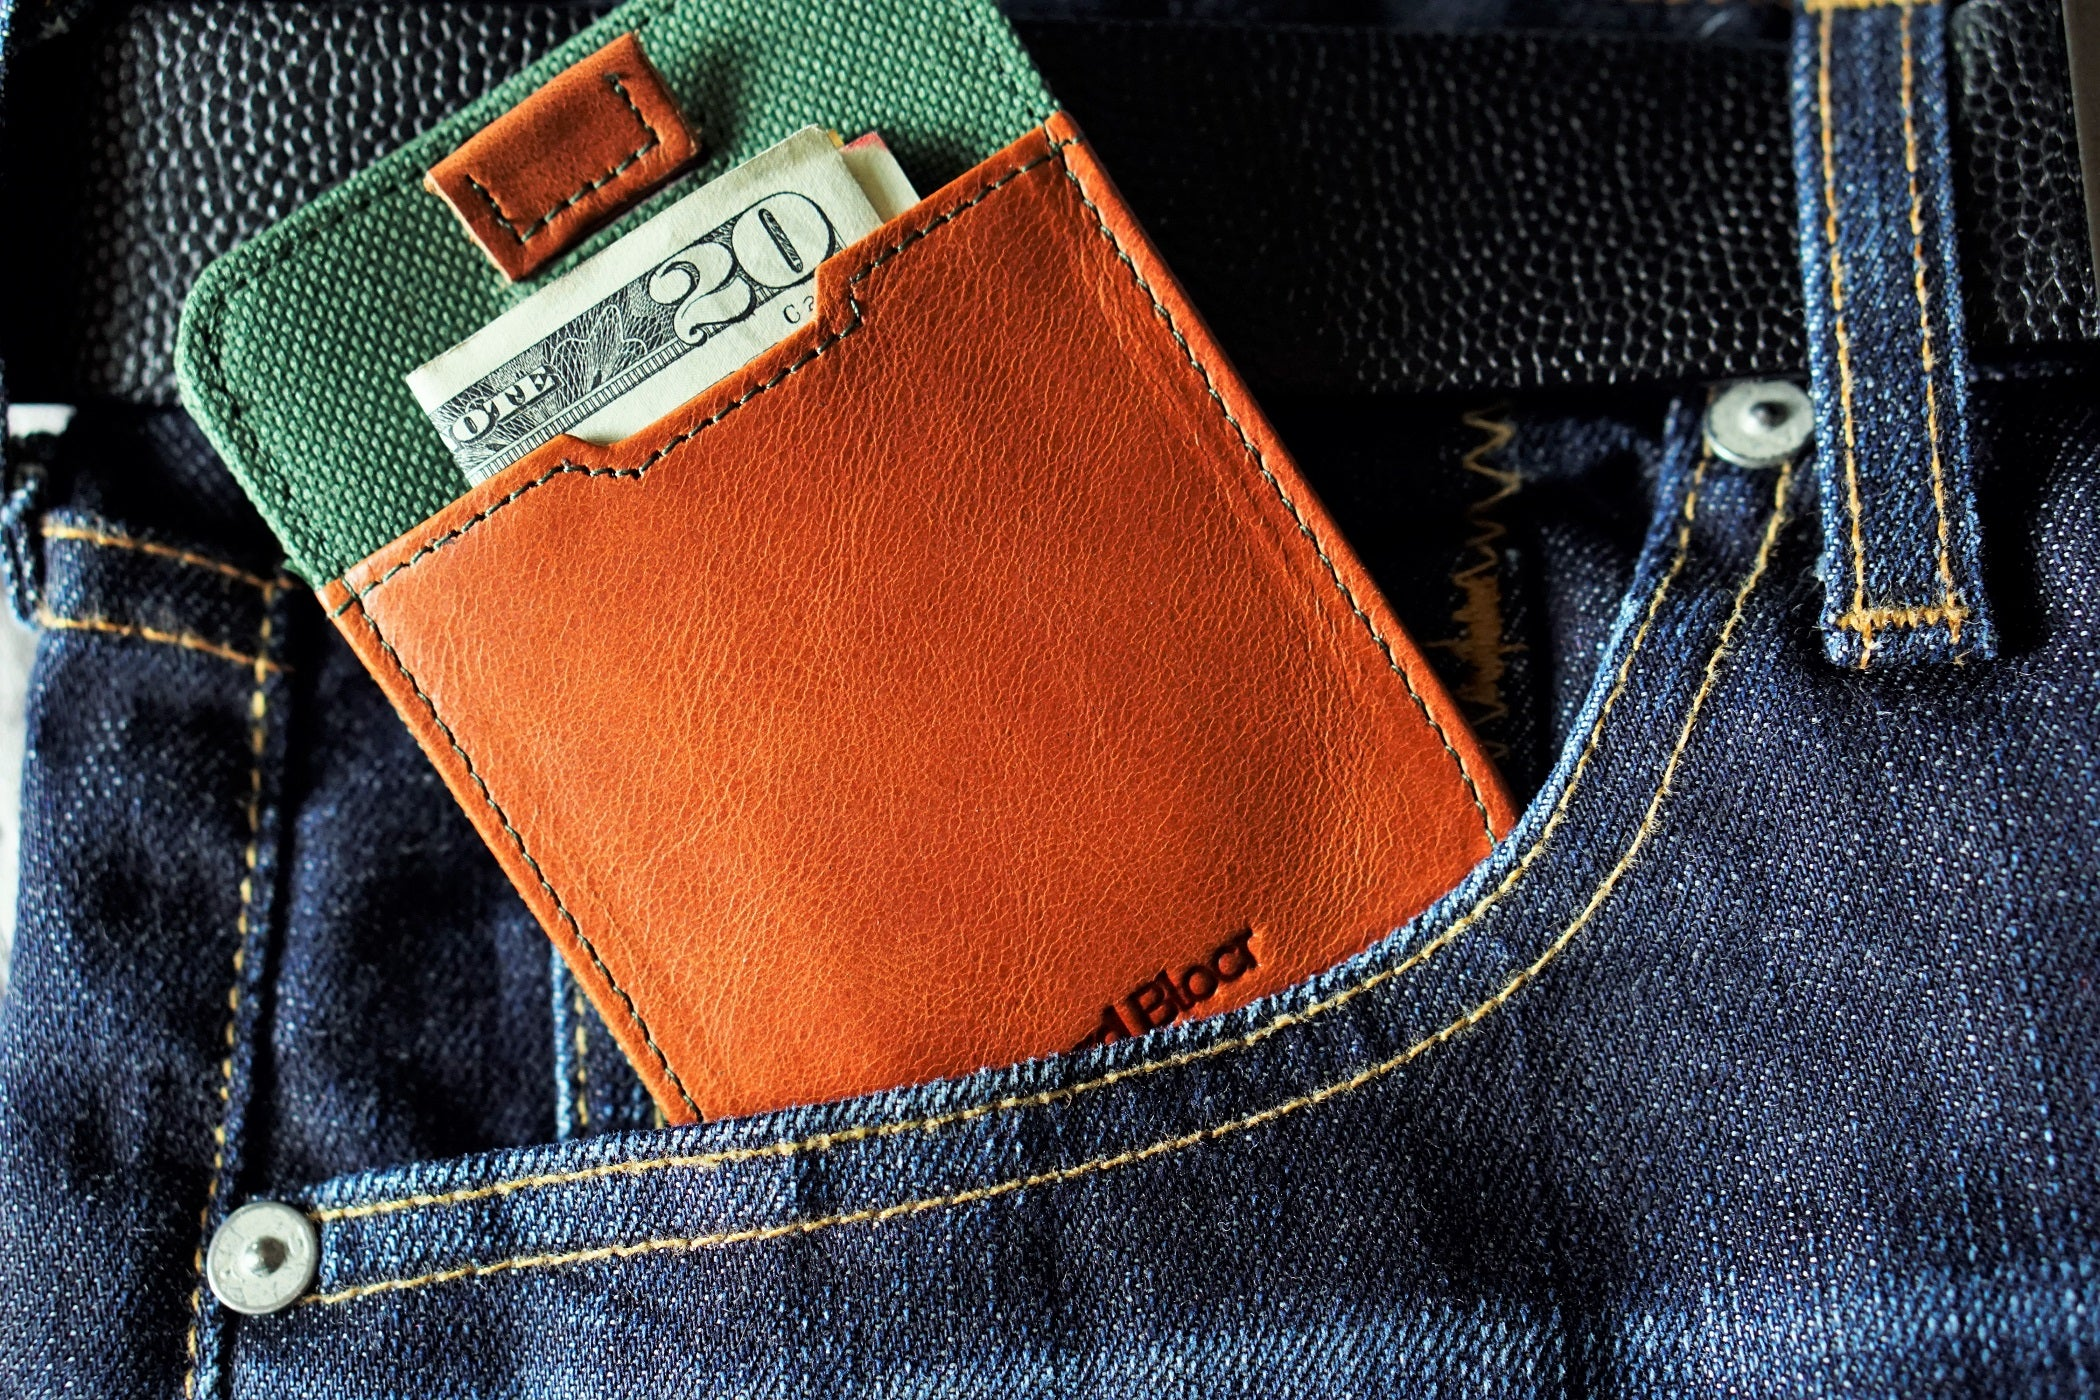 Card Blocr Pull Tab Wallet in Distressed Brown Leather & Green Nylon | RFID Blocking Wallet